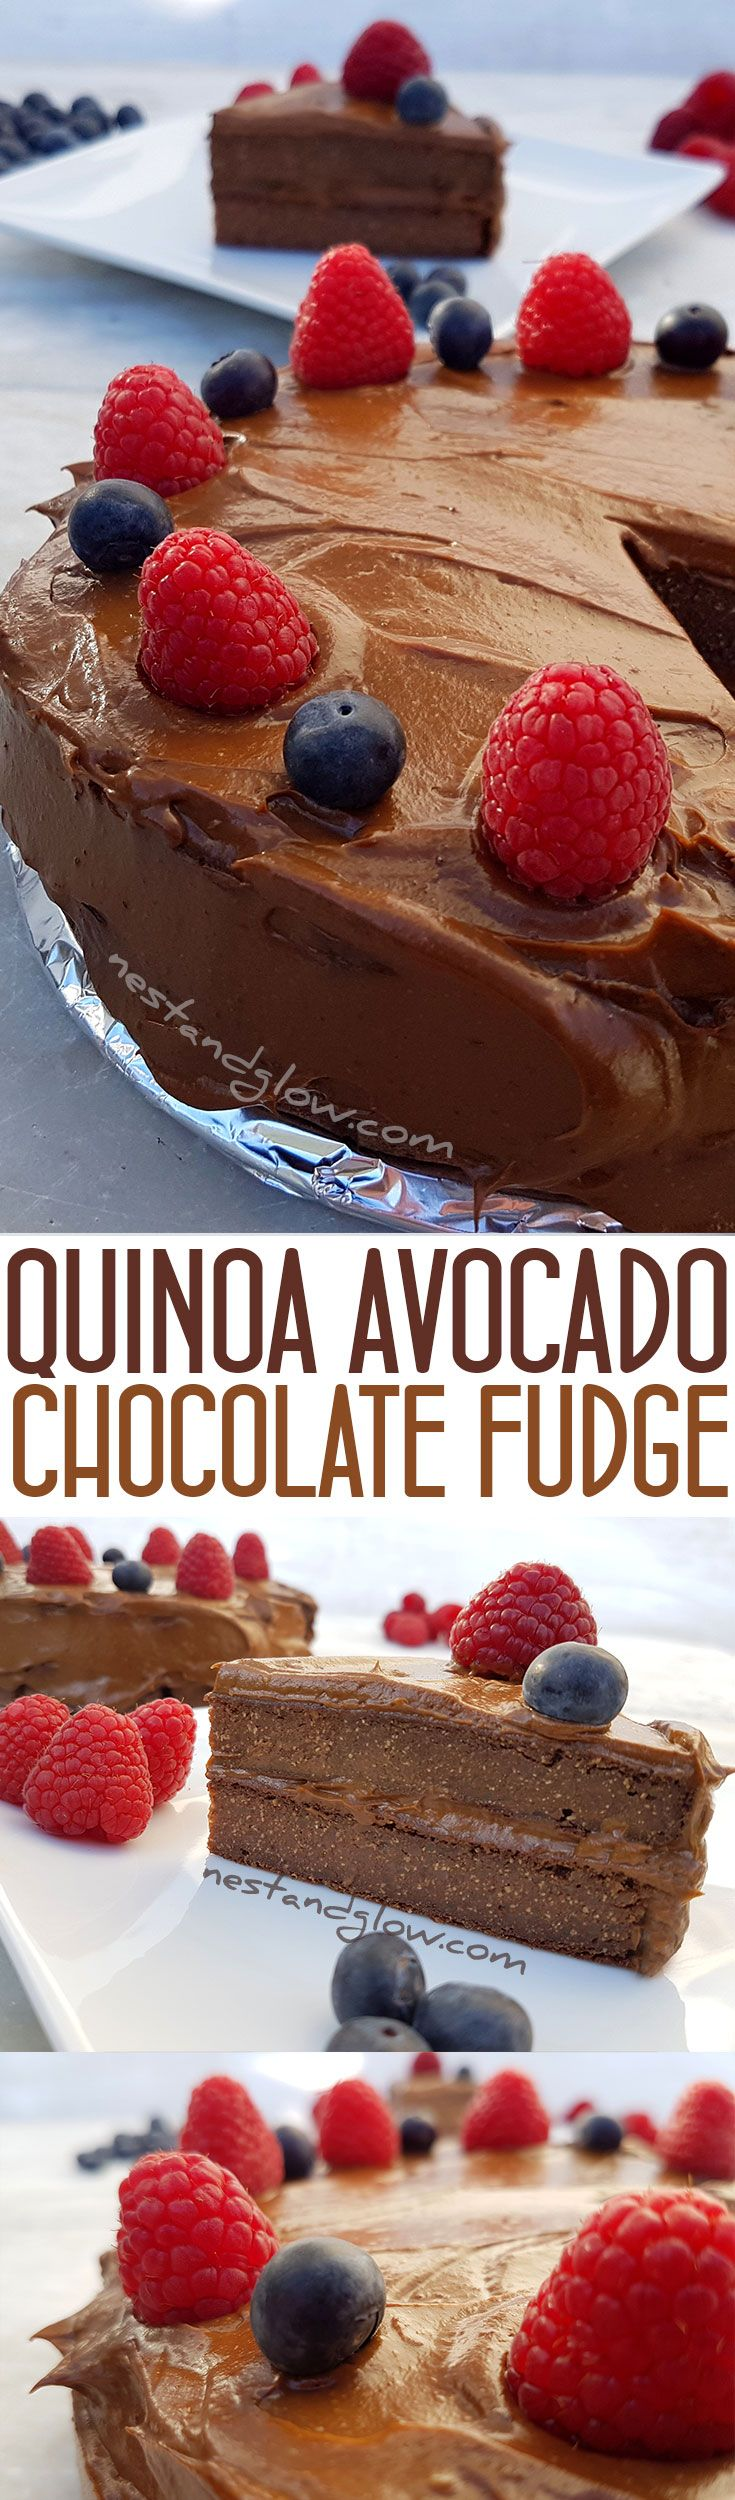 Quinoa Avocado Chocolate Fudge Cake Recipe - Vegan, gluten-free and healthy  via @nestandglow